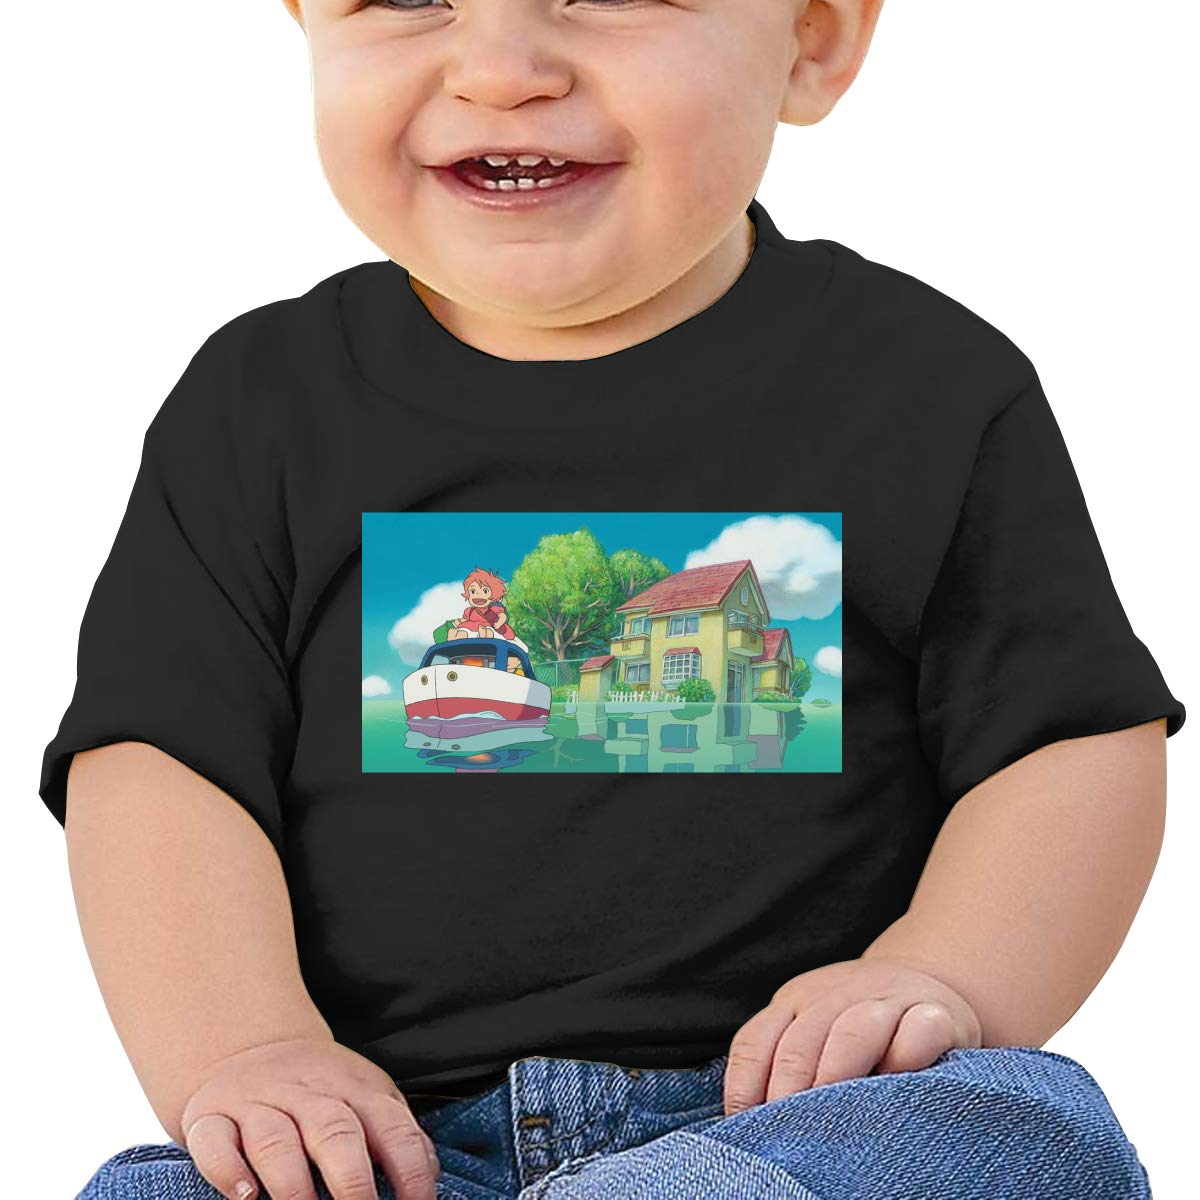 EVE JOHN Ghibi Studio Tee Breathable T Shirt for Toddler Black